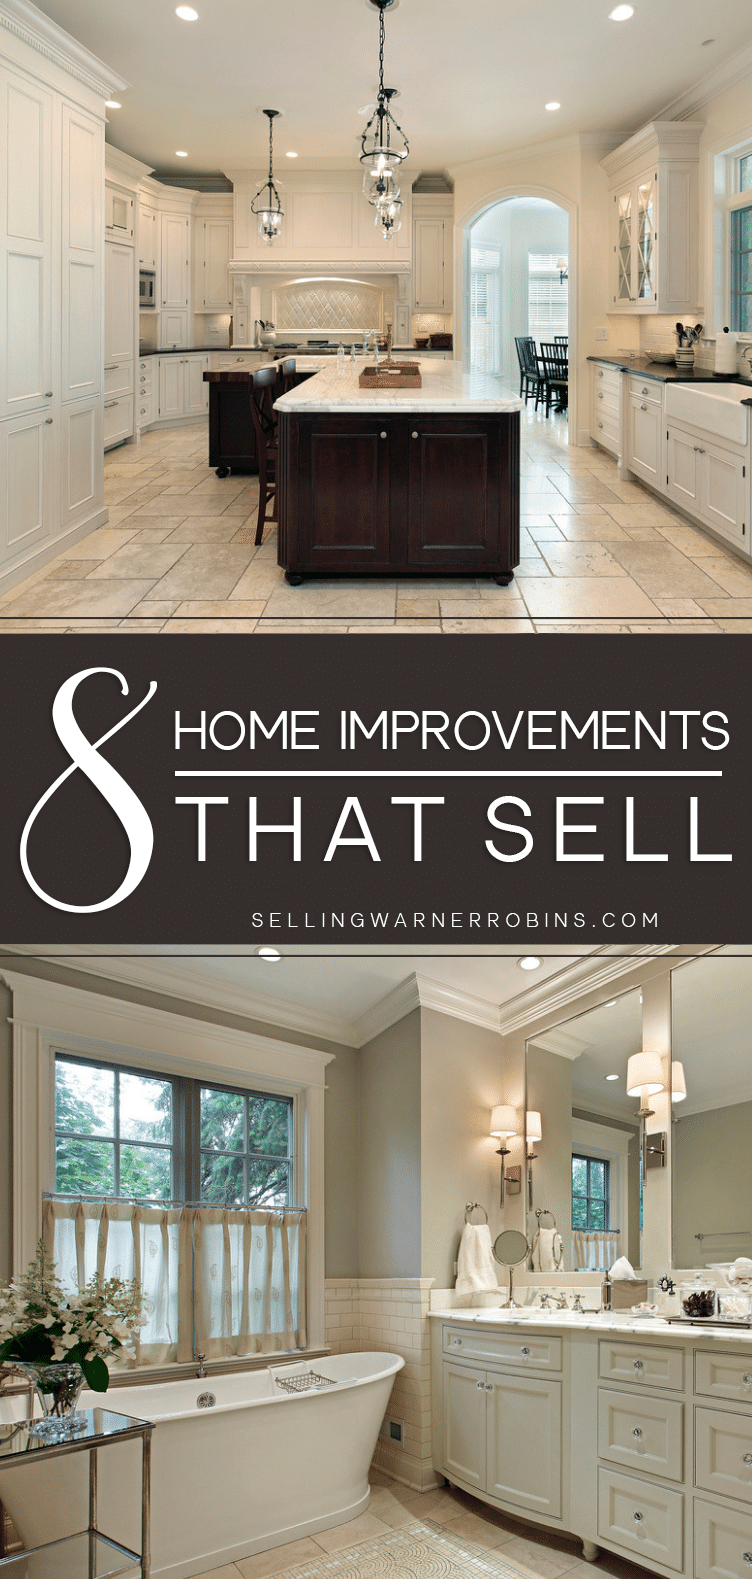 Home Improvements That Sell